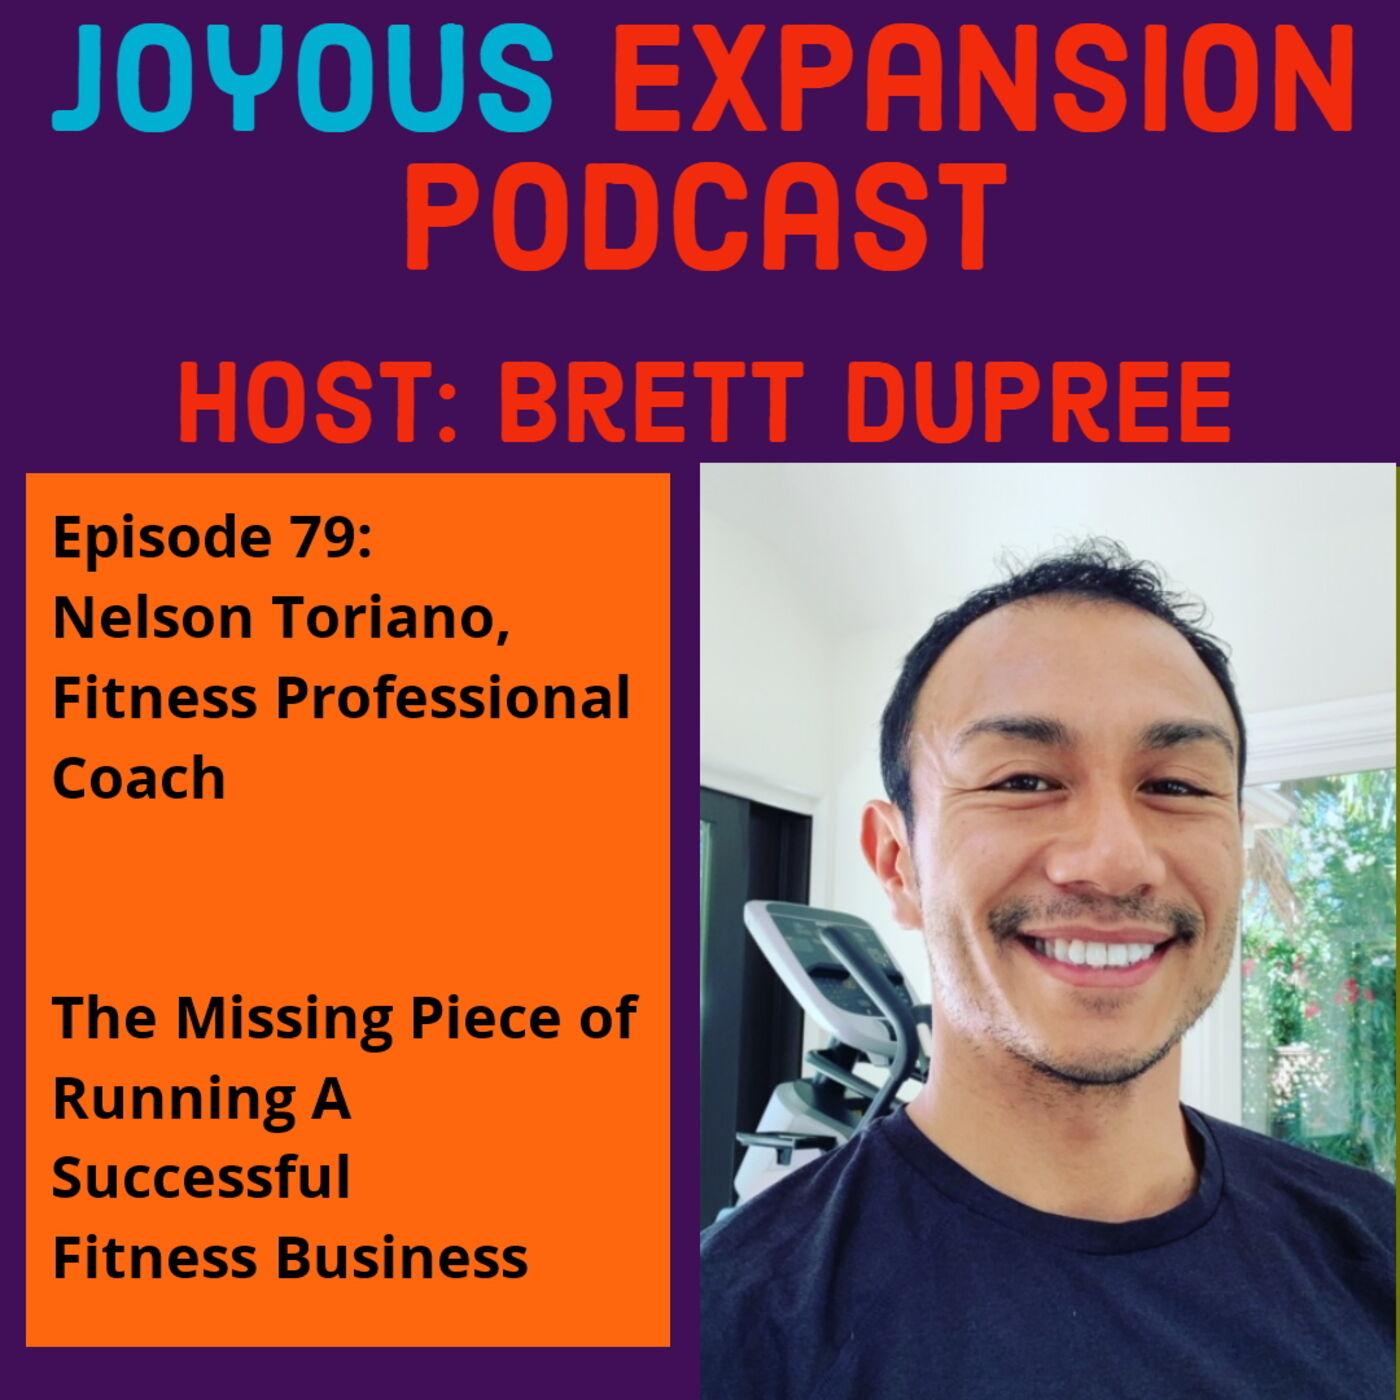 Joyous Expansion #79 - Nelson Toriano - The Missing Piece of Running A Successful Business